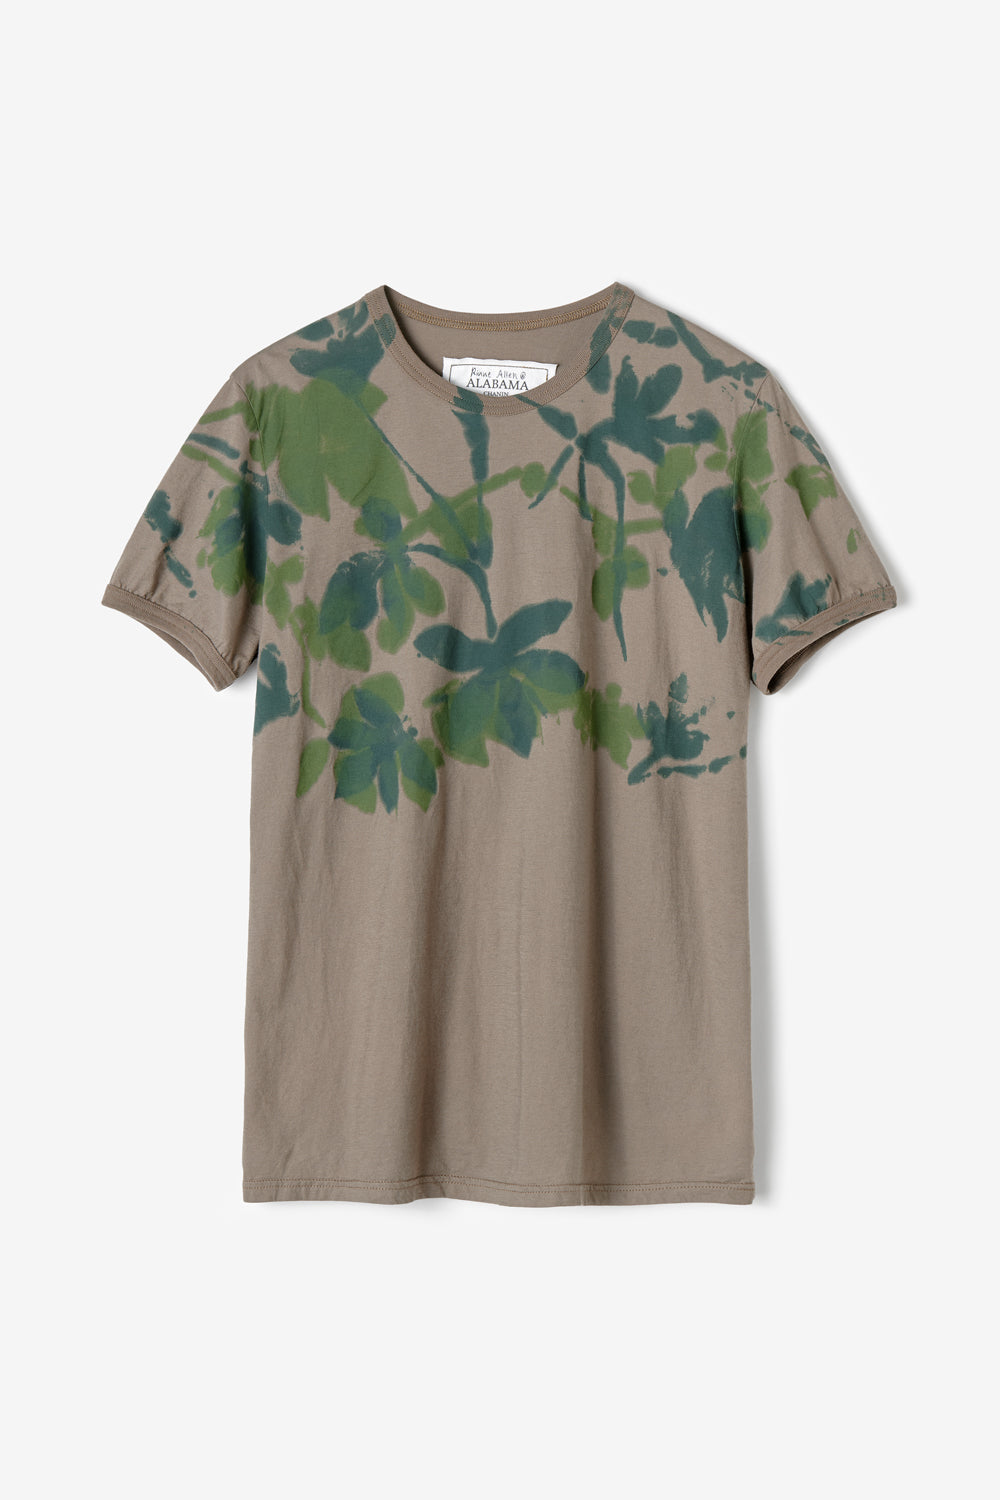 Alabama Chanin 100% Organic Cotton T-Shirt Top with Hand Painted Leaves